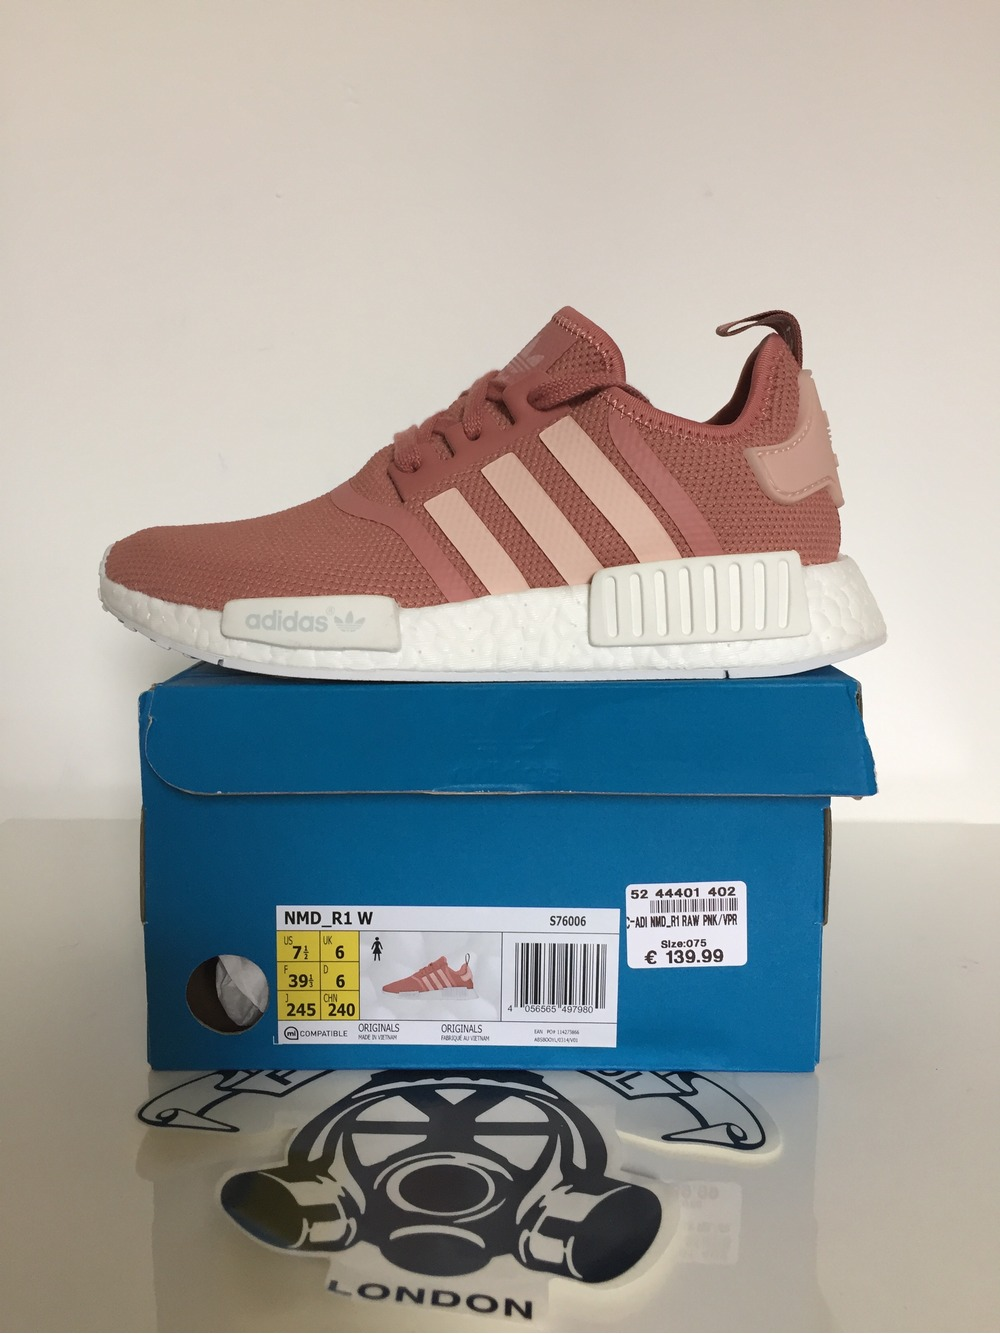 cmlhnc Buy cheap Online - adidas nmd raw pink for sale,Shop Up To OFF71